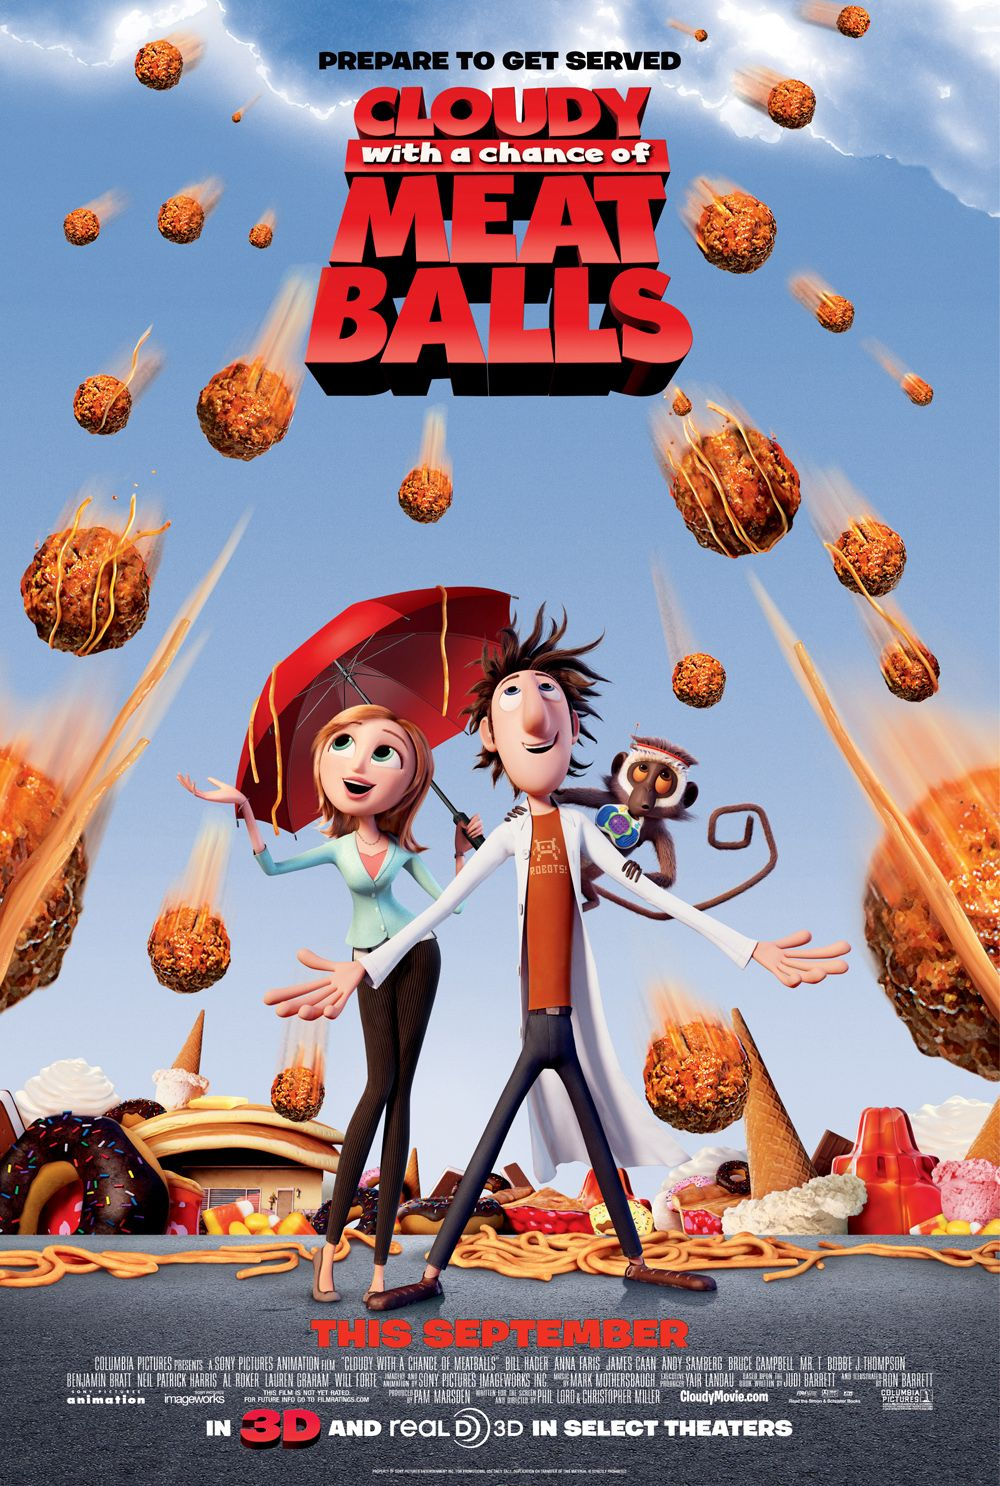 Βρέχει Κεφτέδες / Cloudy with a Chance of Meatballs (2009)